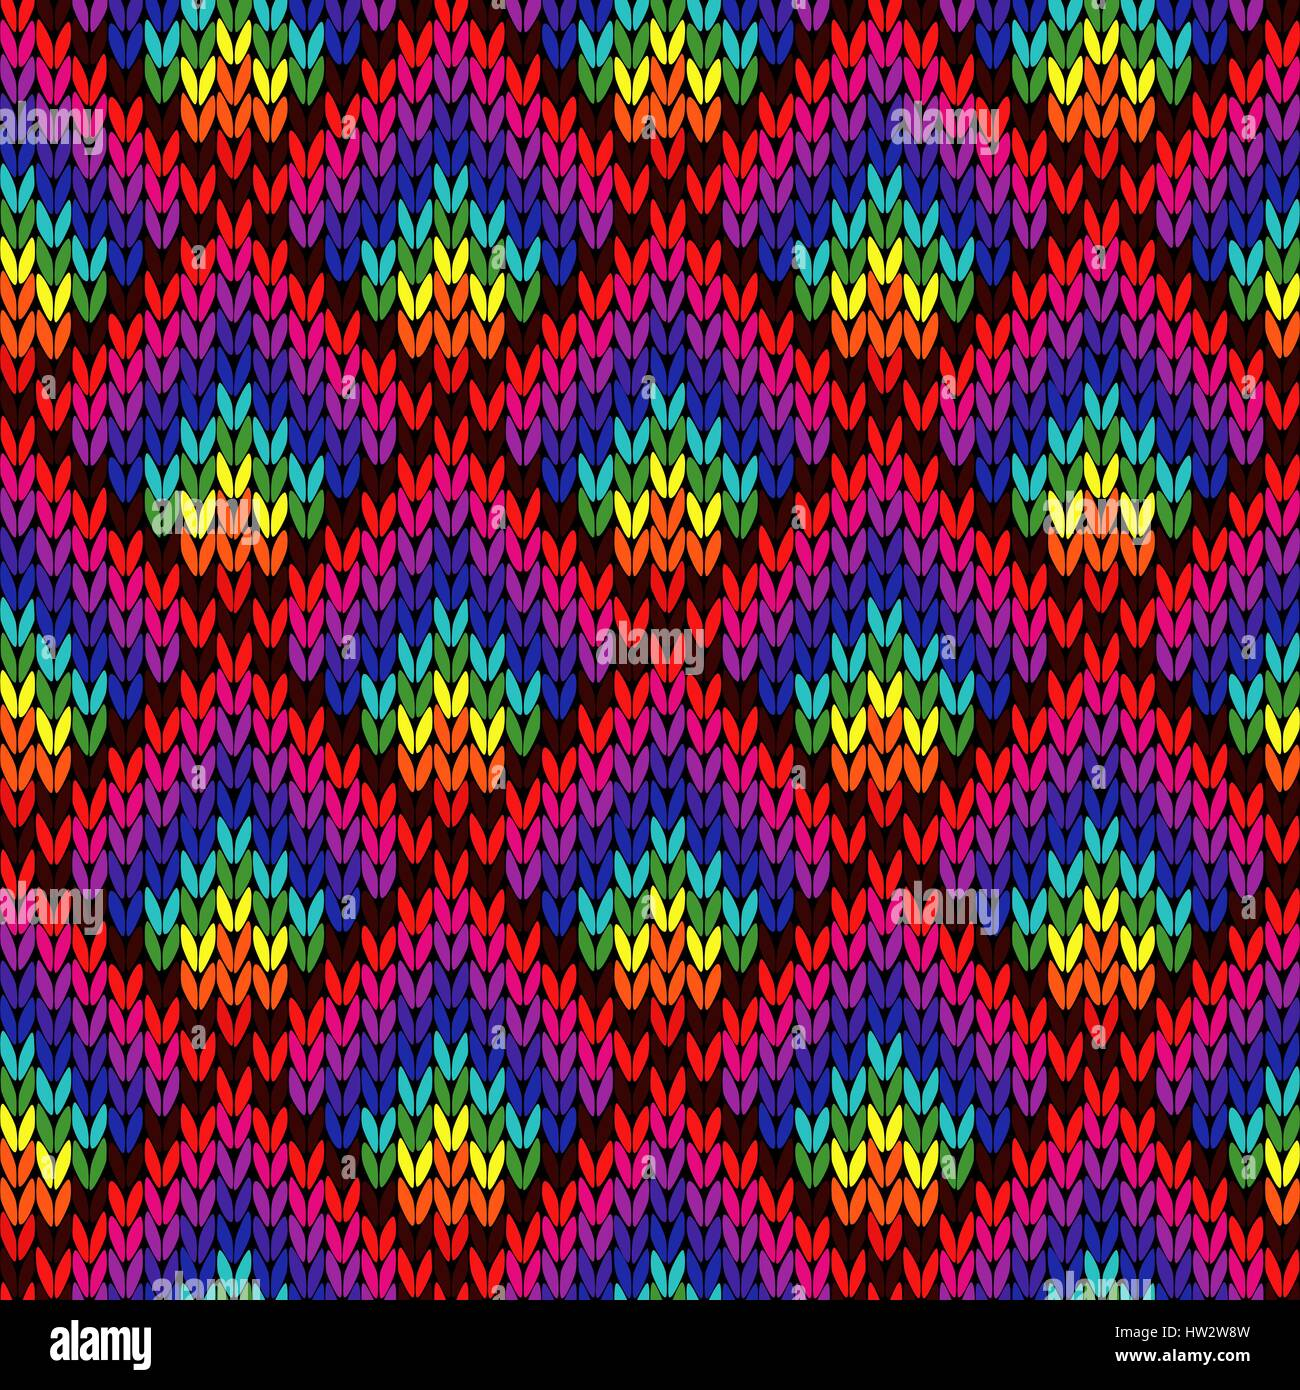 Knitting Seamless Colourful Geometric Vector Pattern In